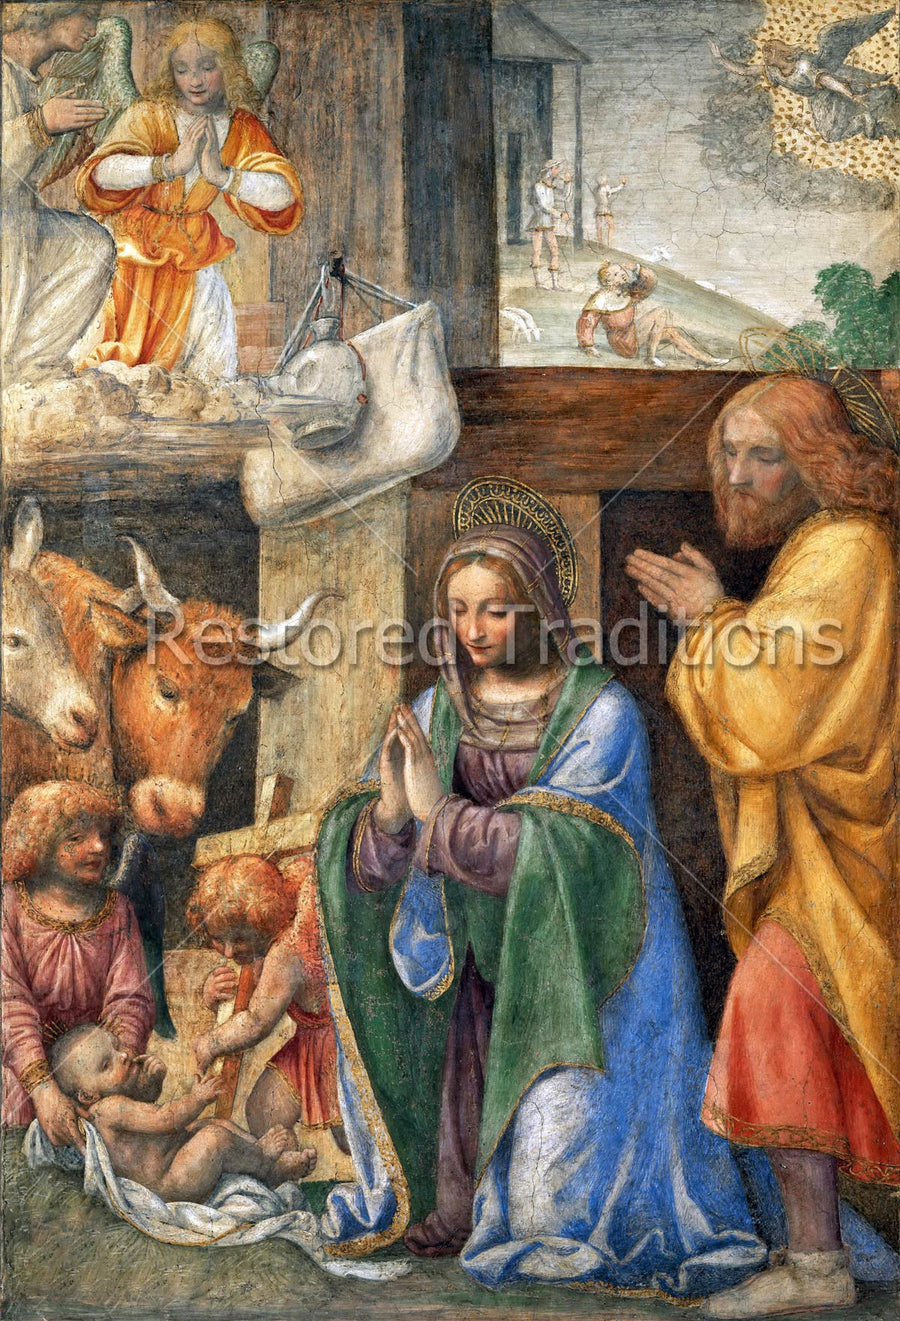 The Holy Family on the First Christmas With Images of the Cross